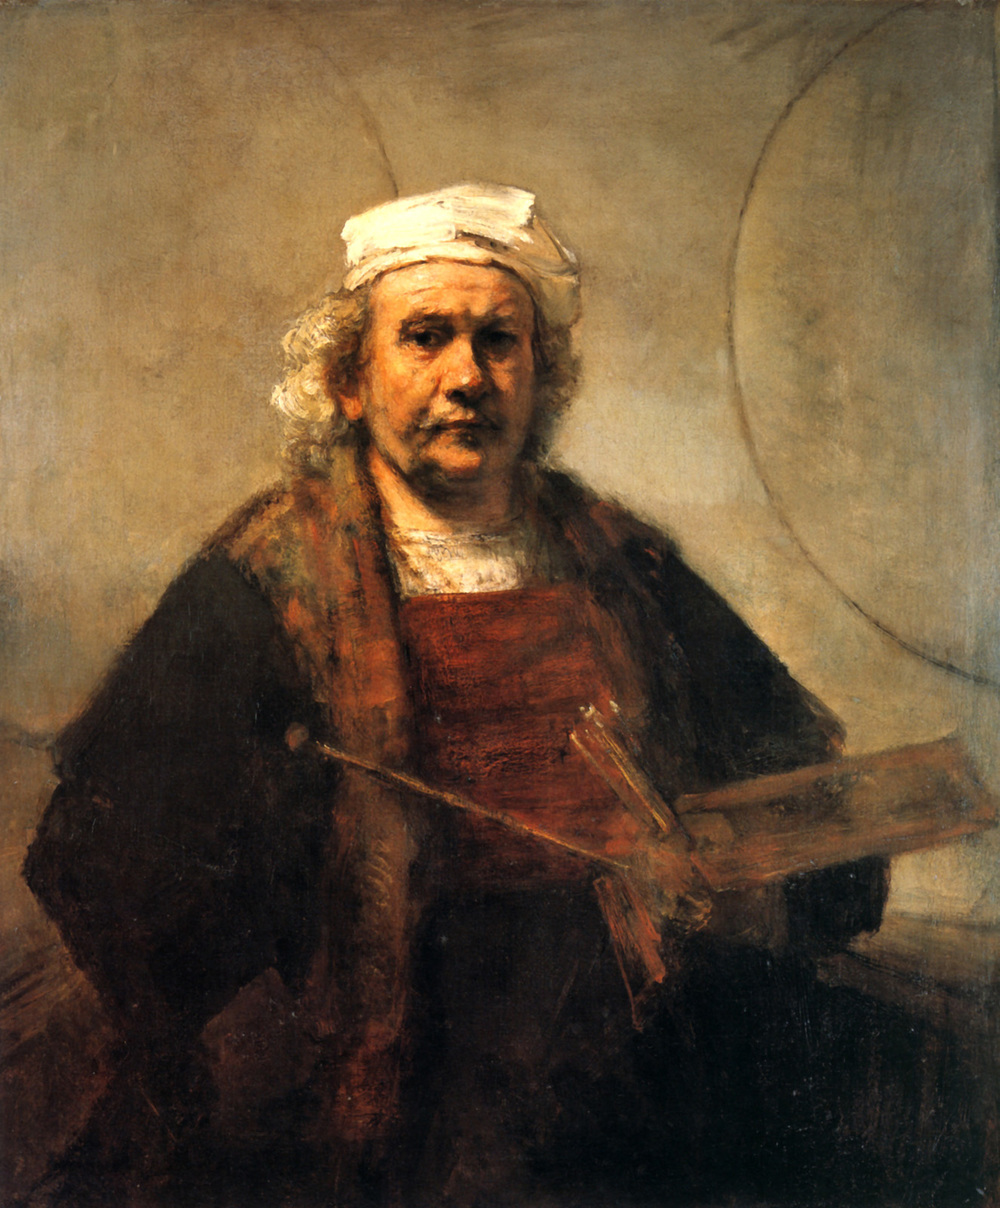 Rembrandt Harmenszoon van Rijn, Self Portrait, Oil on Canvas, 1663